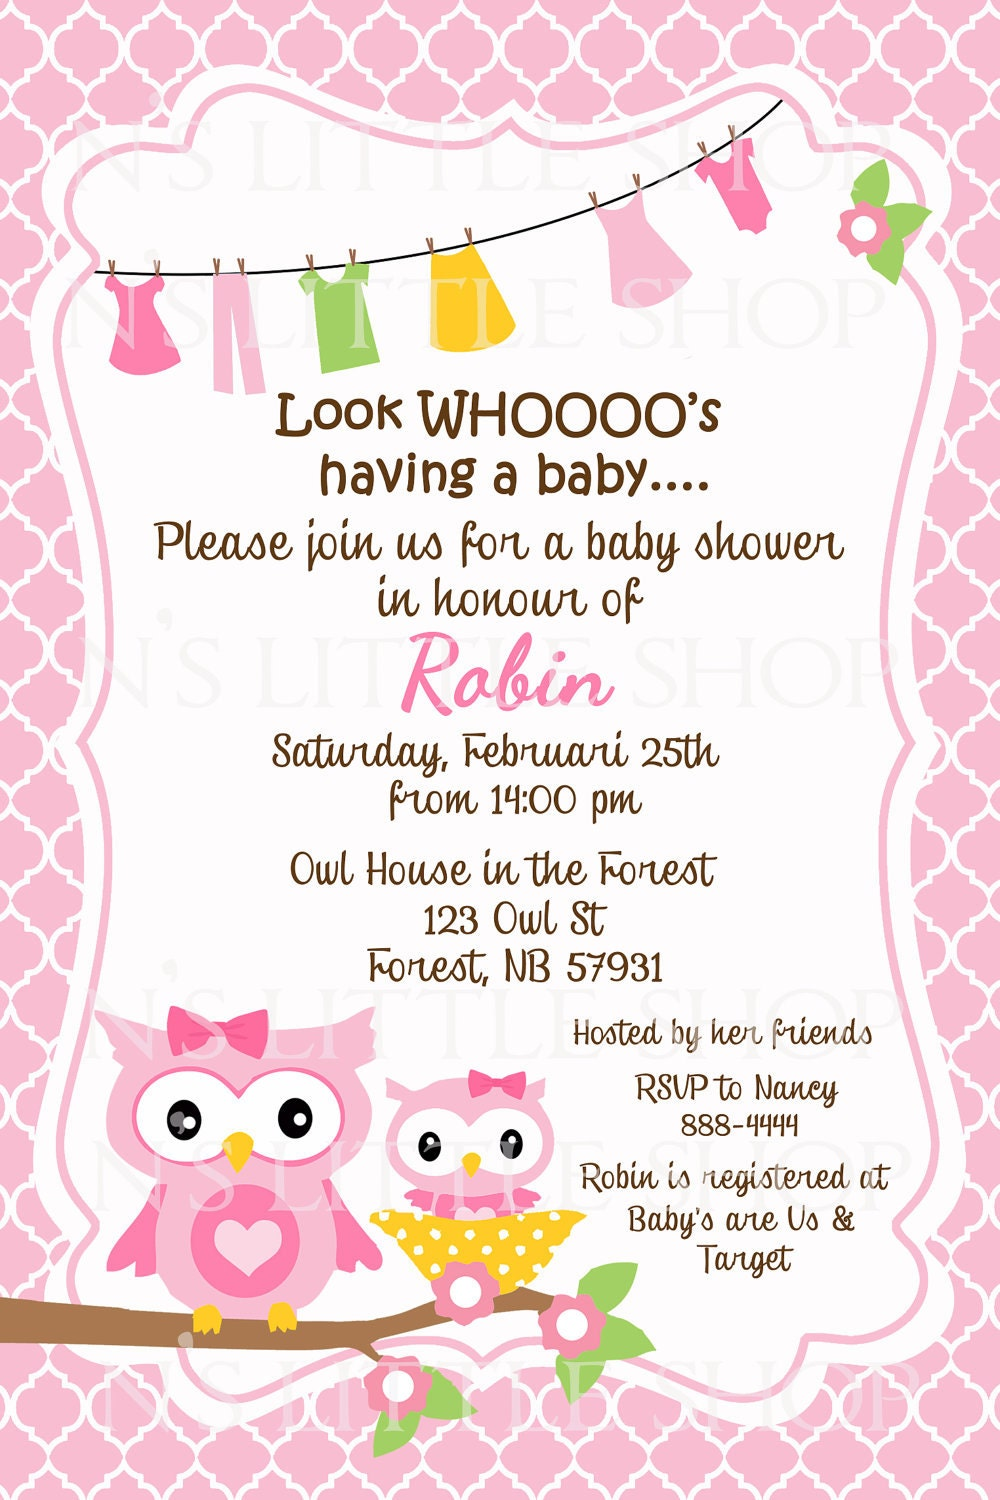 Baby Shower Invitation Card for your inspiration to make invitation template look beautiful